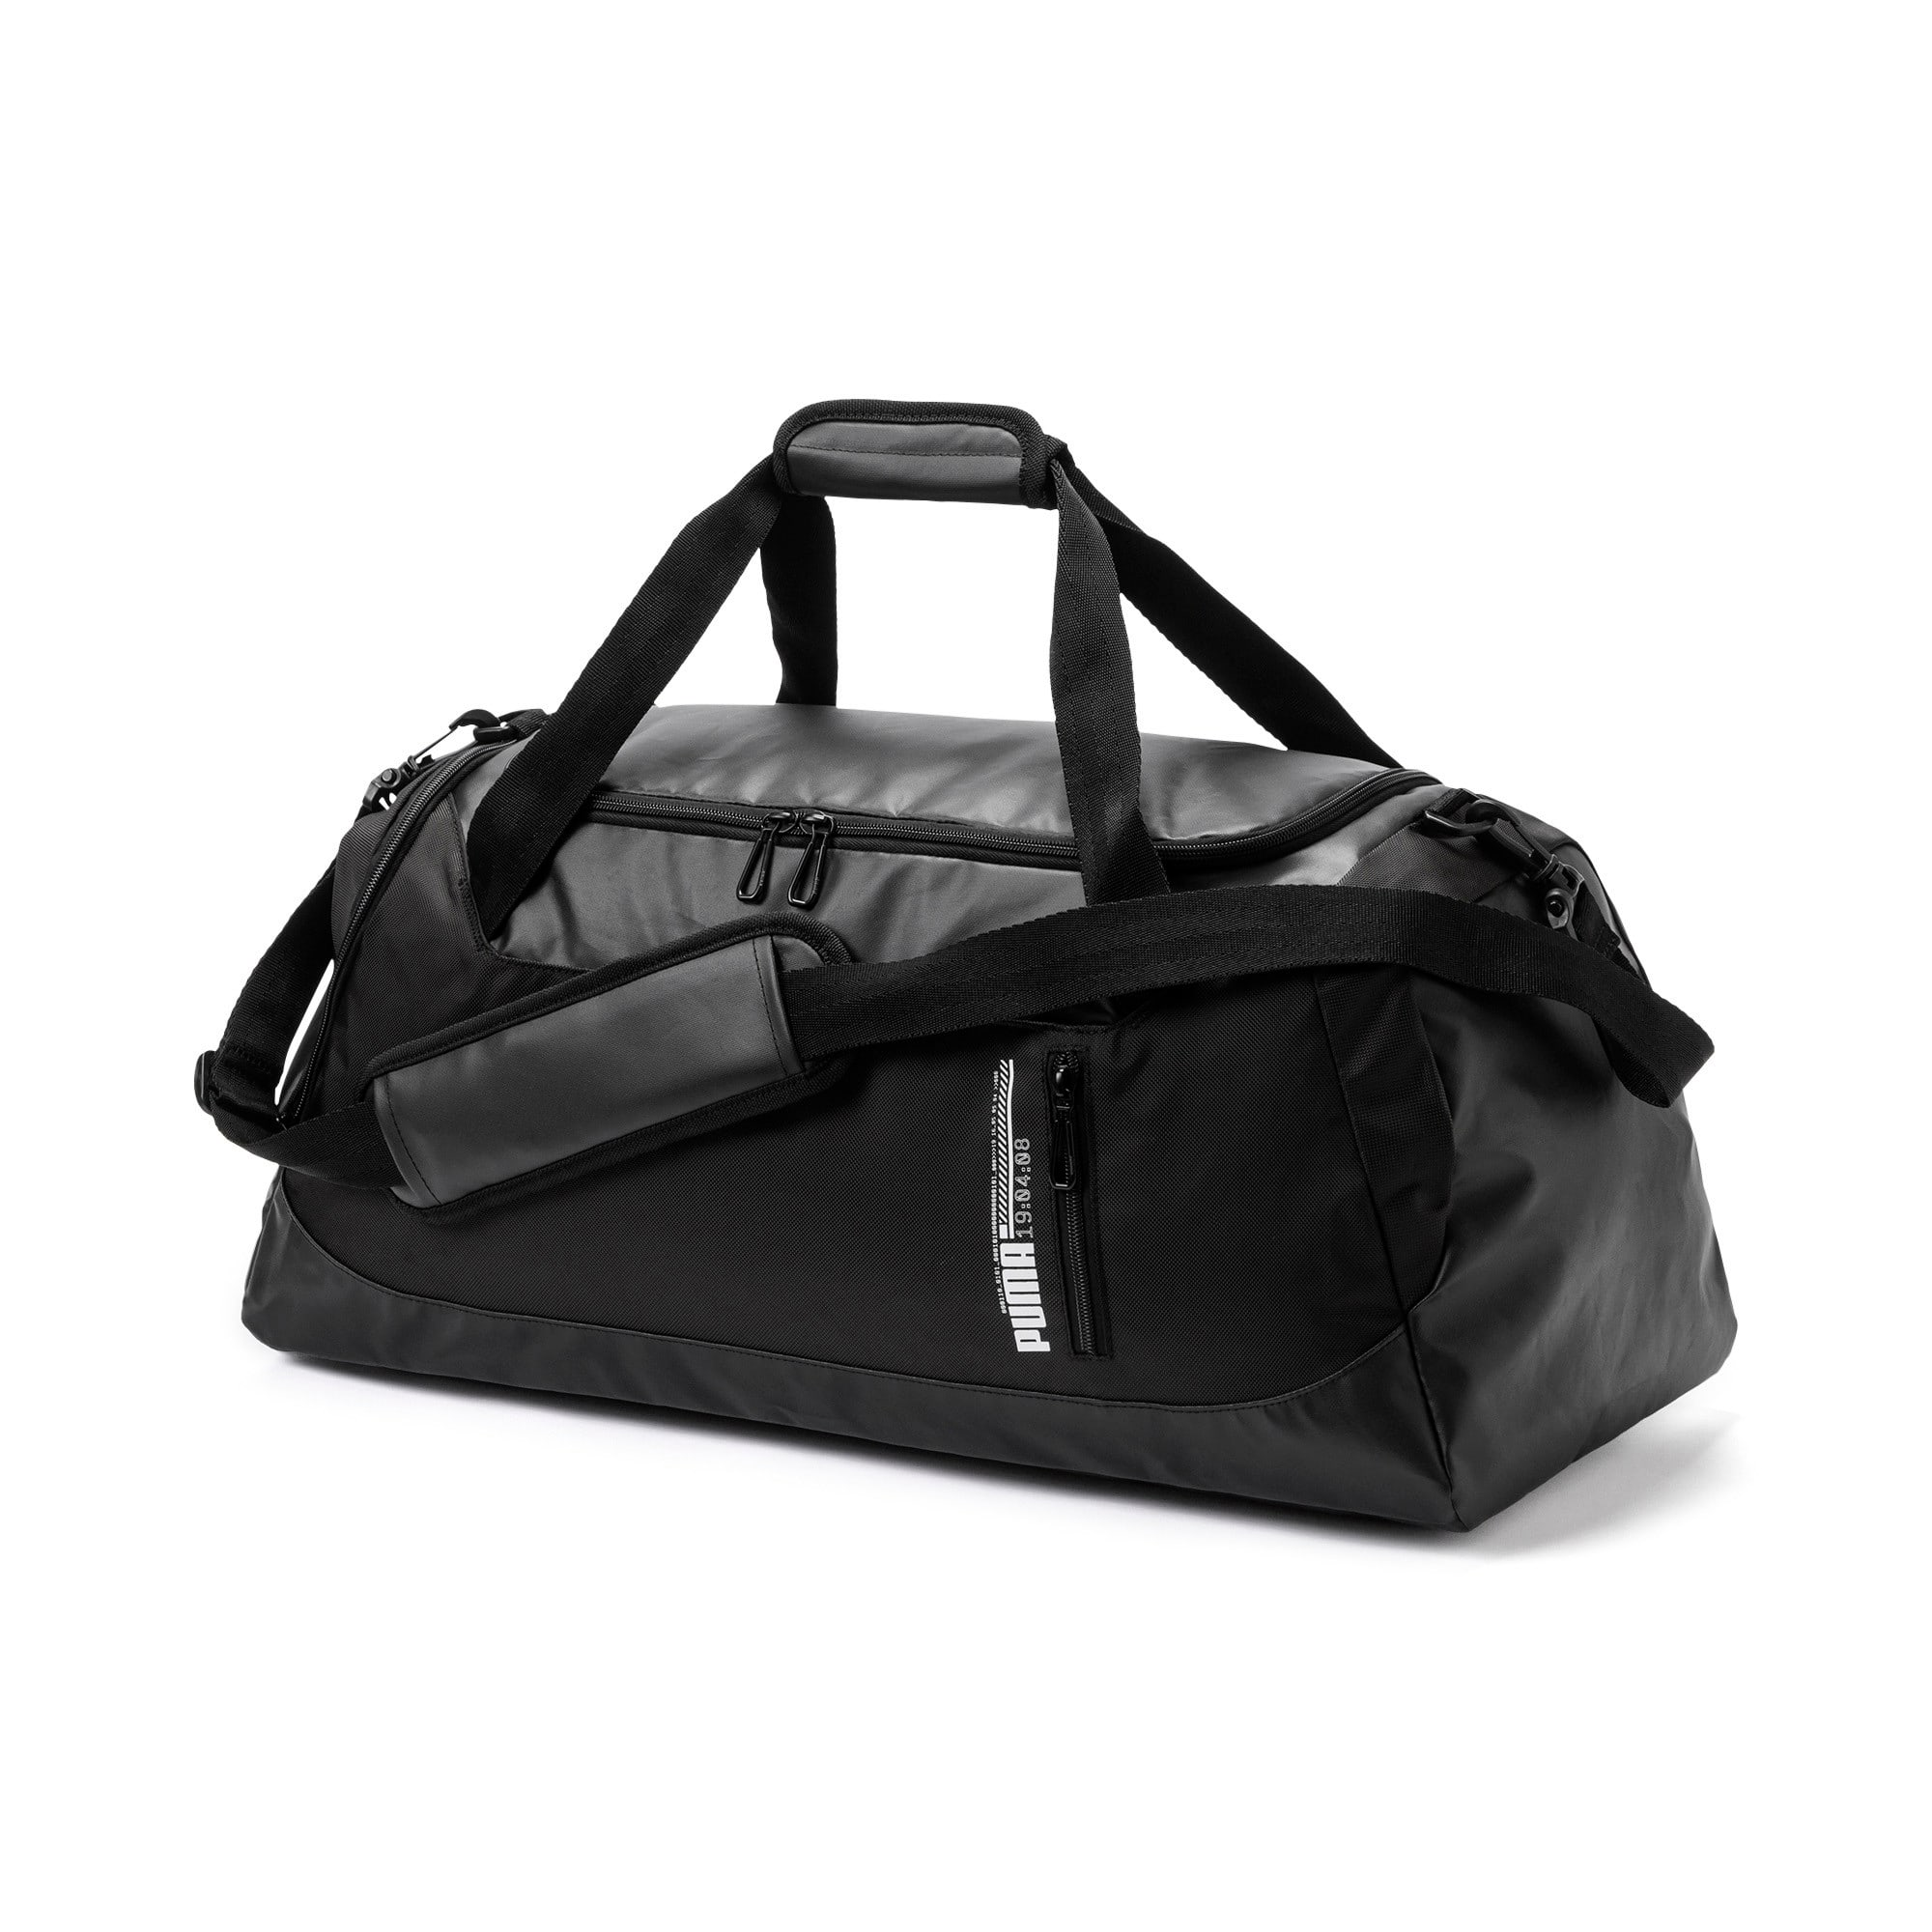 Thumbnail 1 of Energy Training Bag, Puma Black, medium